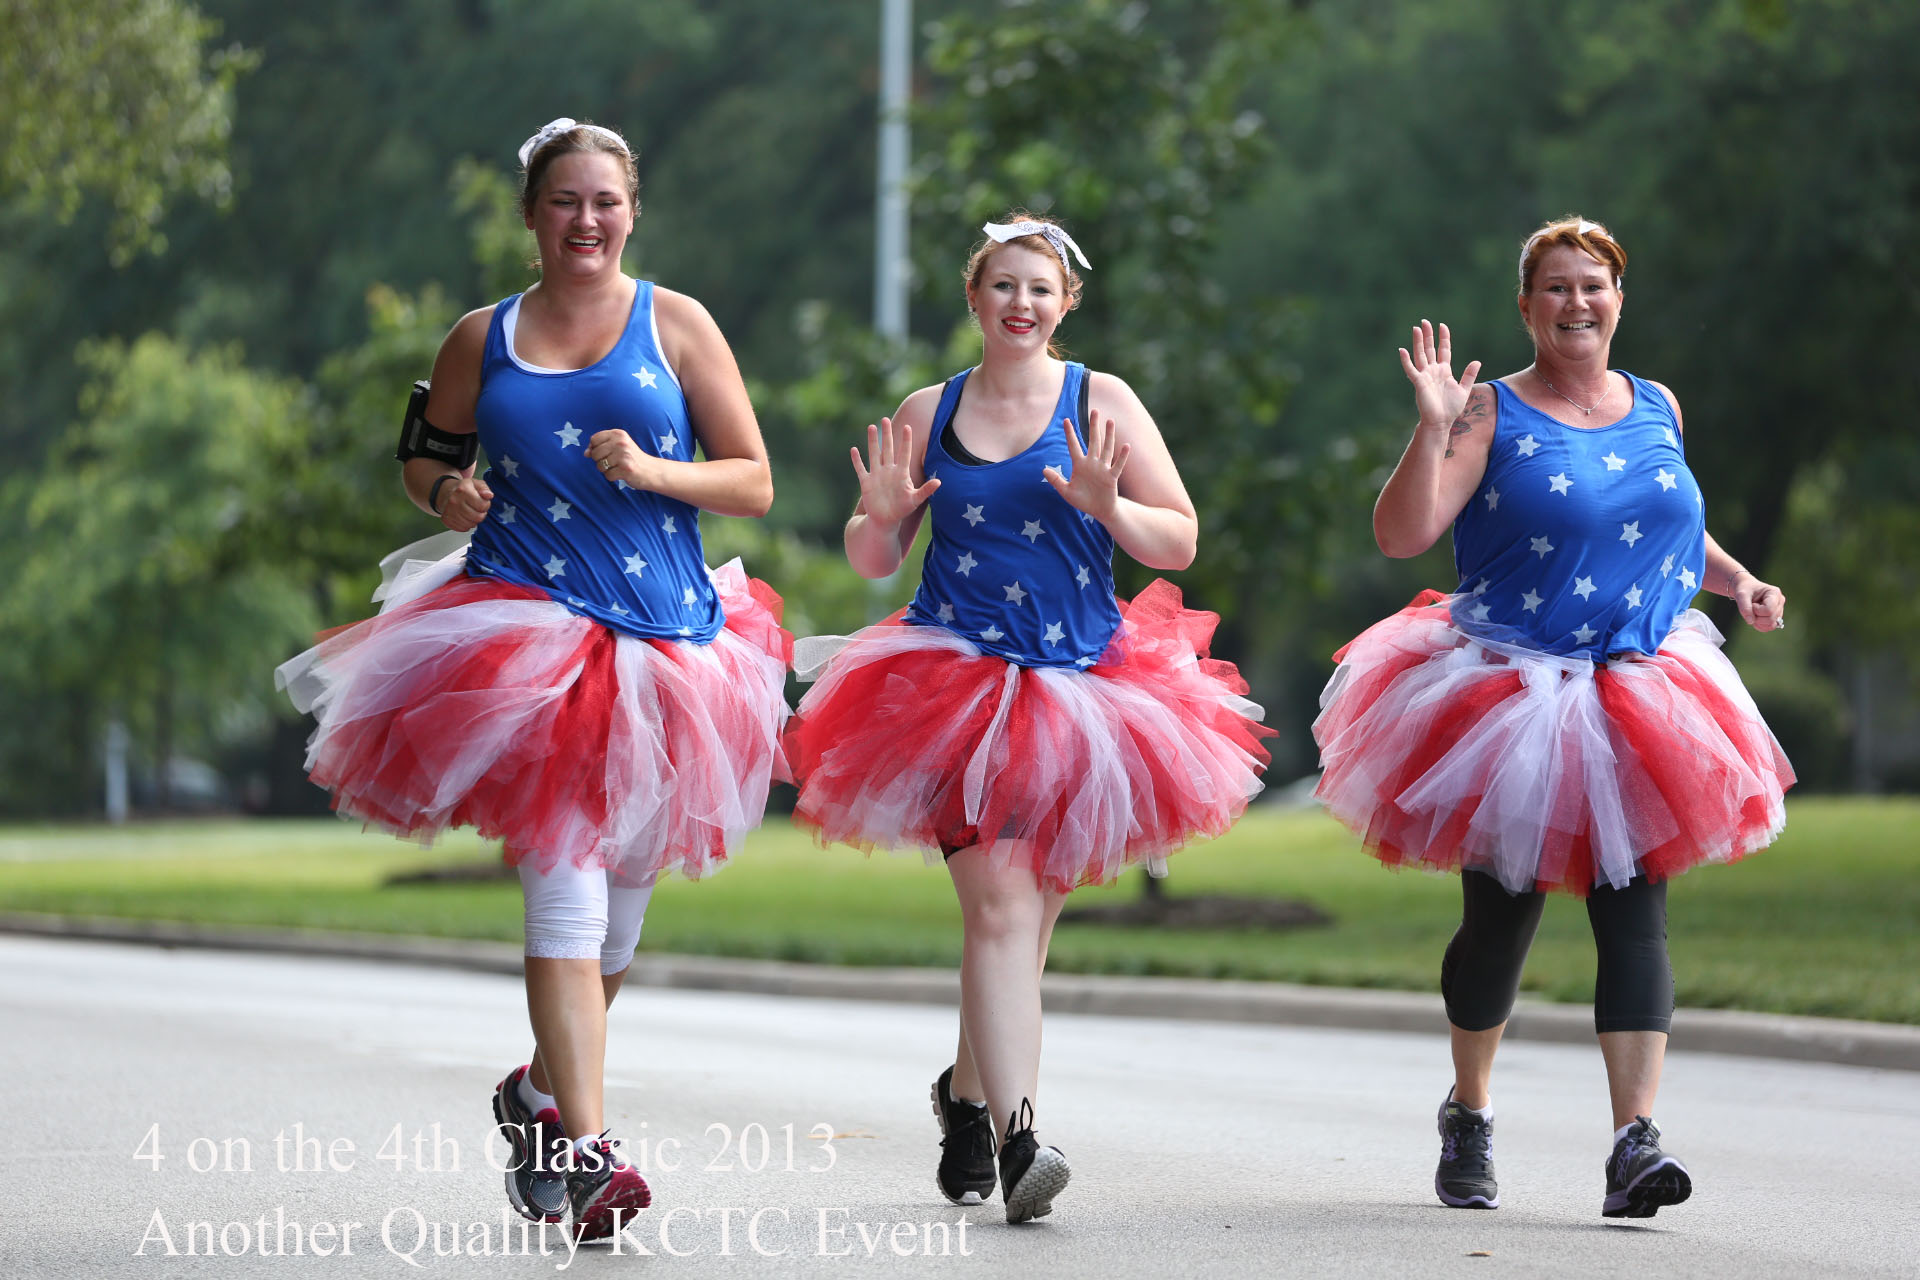 Tutus on July 4th, For Four on the Fourth Ward Parkway, Kansas City